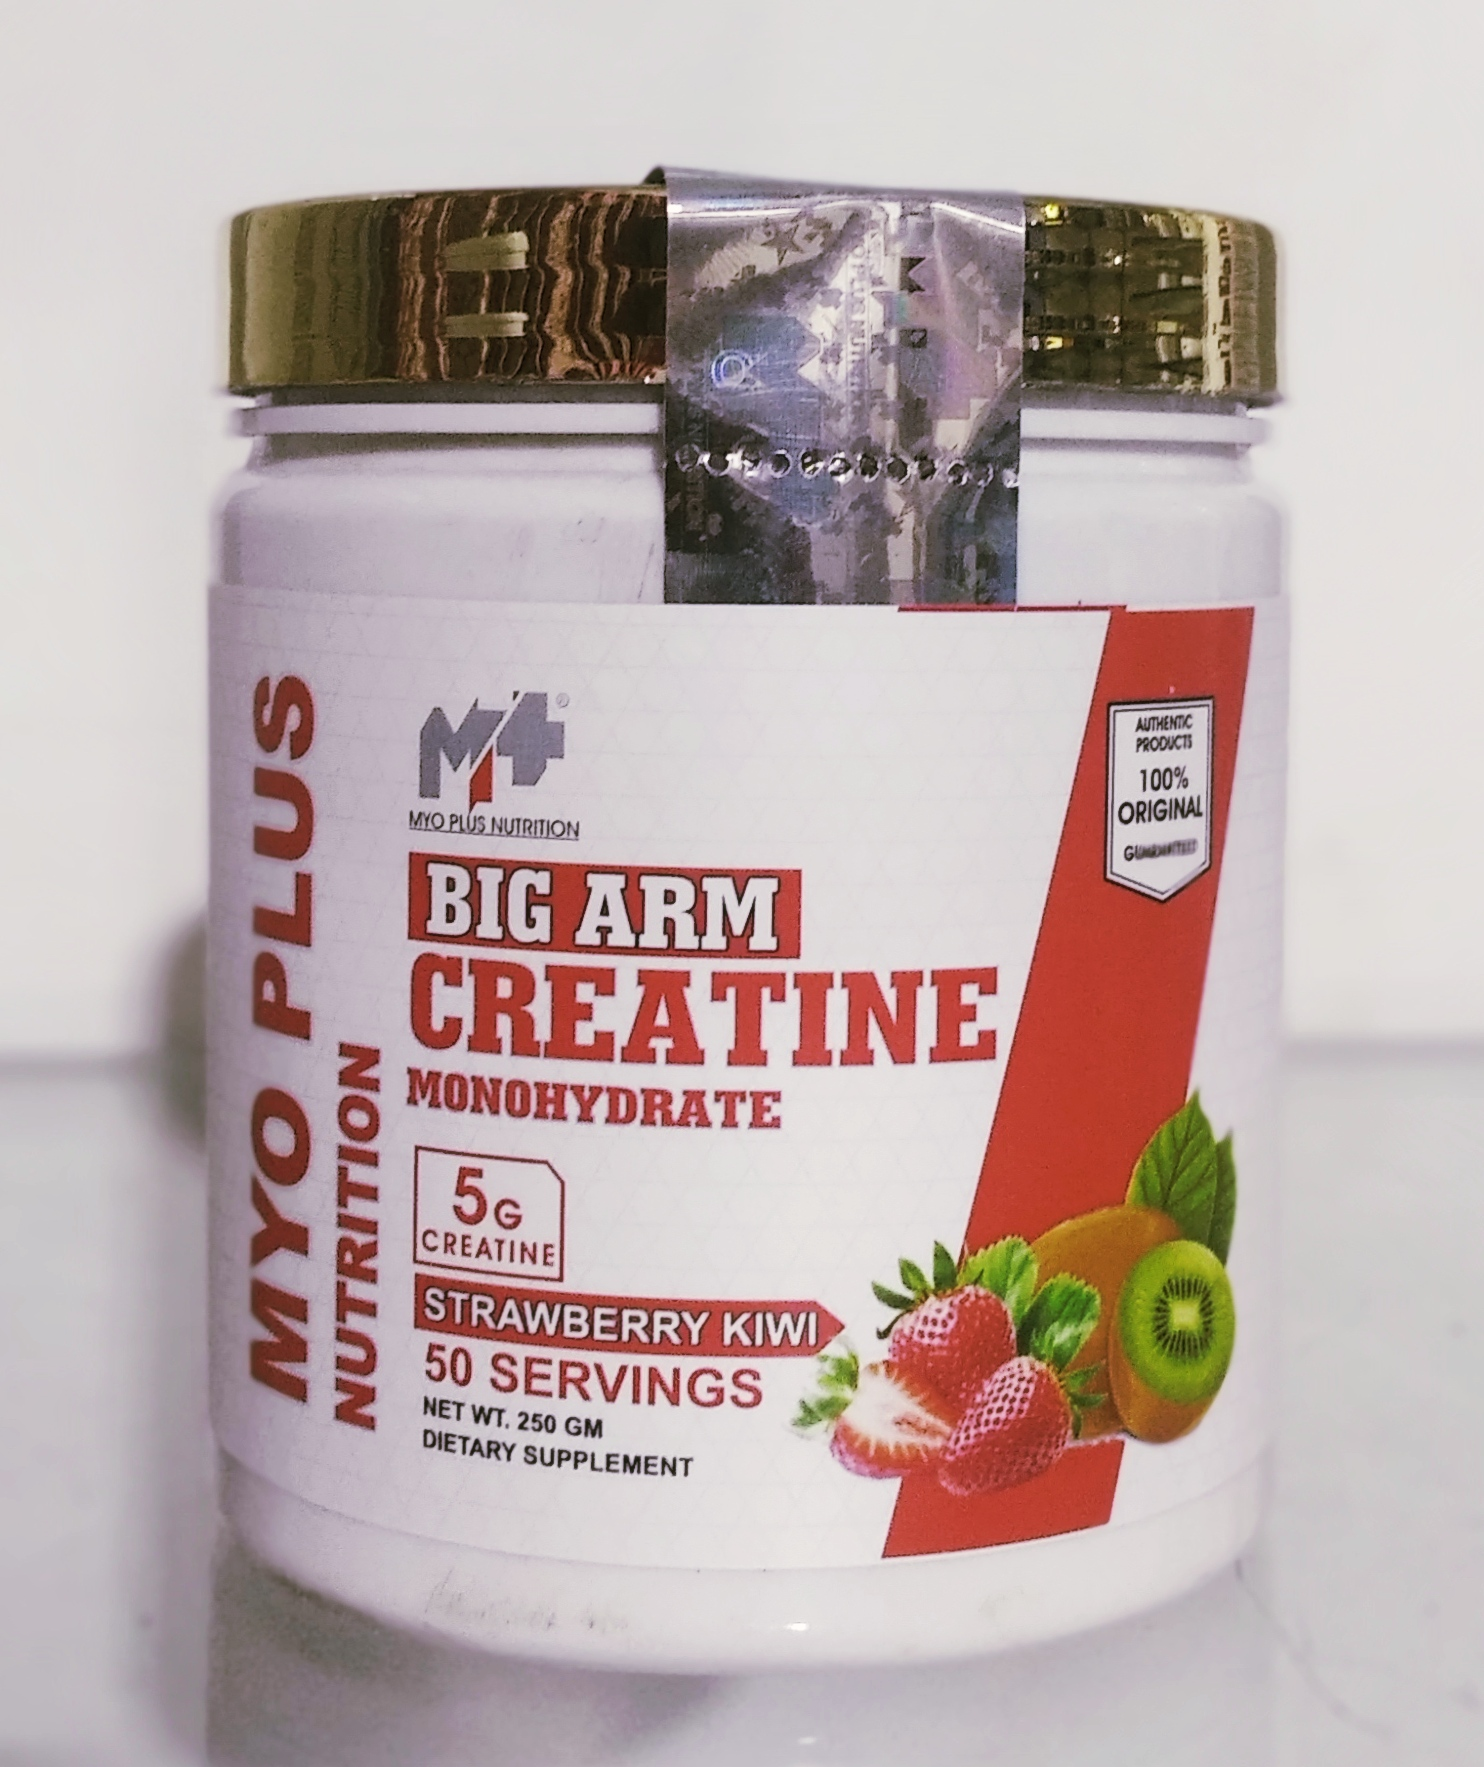 Big Arm Creatine